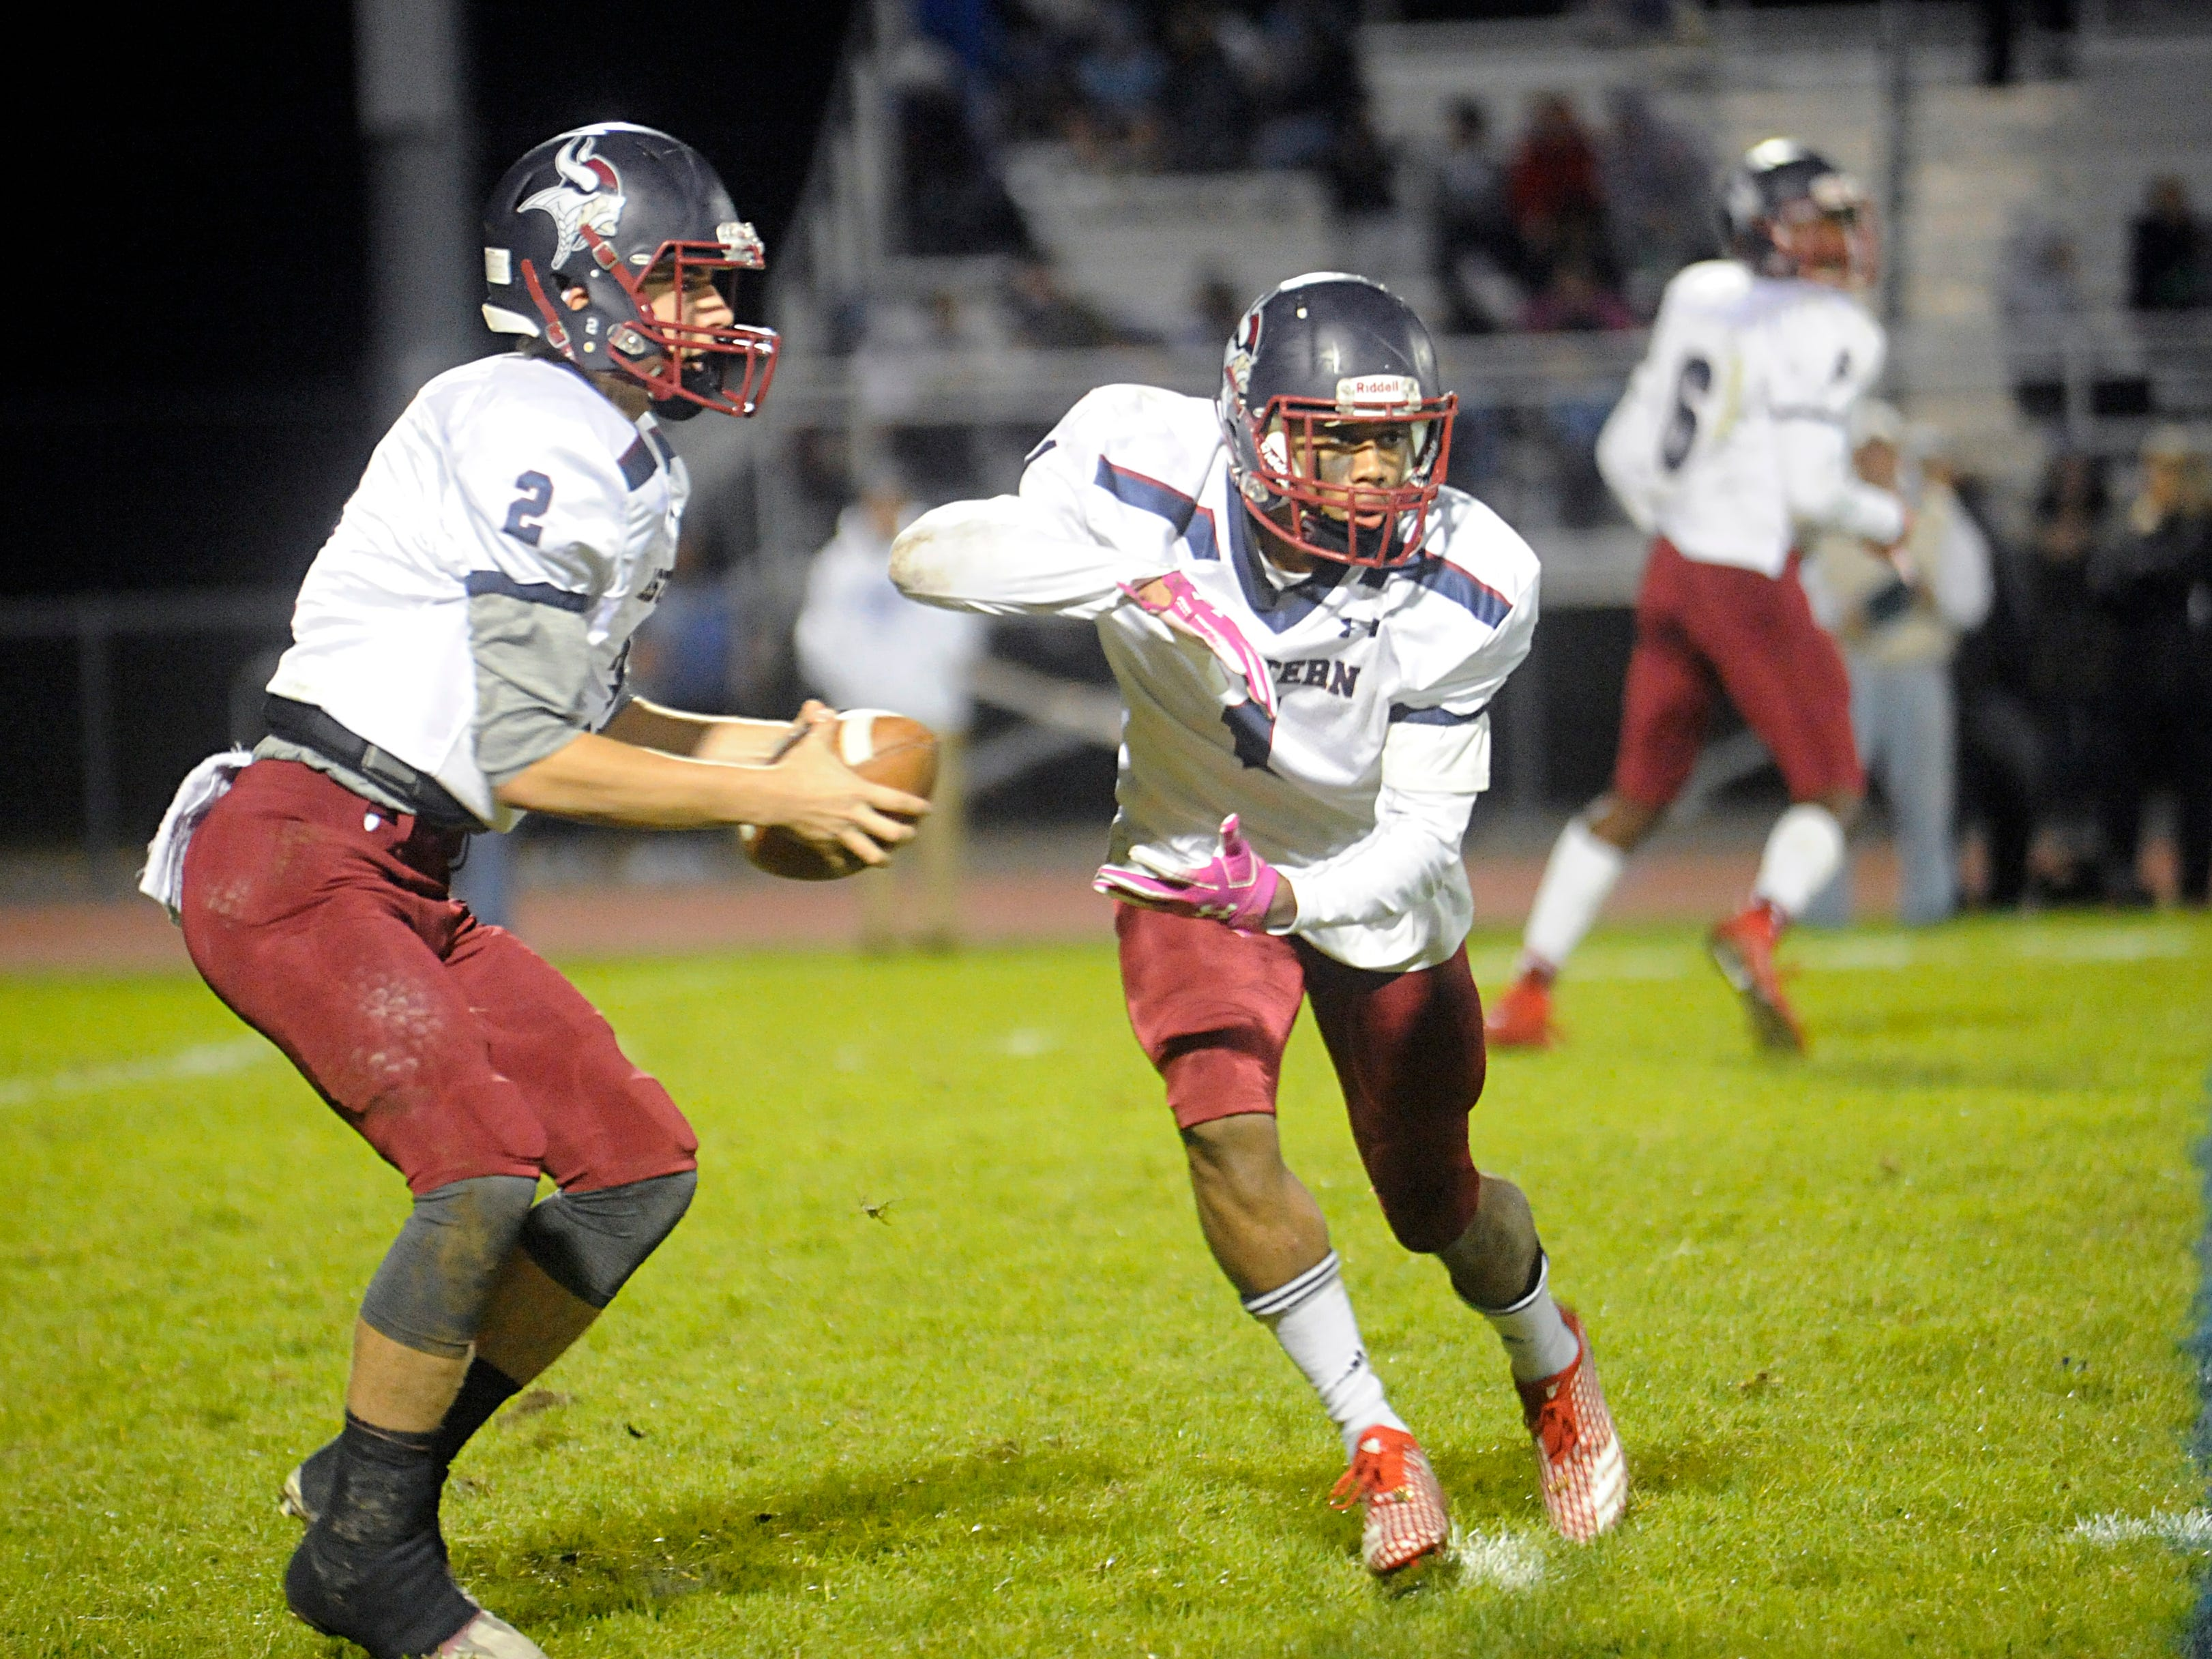 Eastern's QB, Andrew Heck pulls a fake handoff with Mike Suarez before throwing downfield against Hammonton. The visiting Vikings topped the Blue Devils, 13-12, on Friday, October 19, 2018.